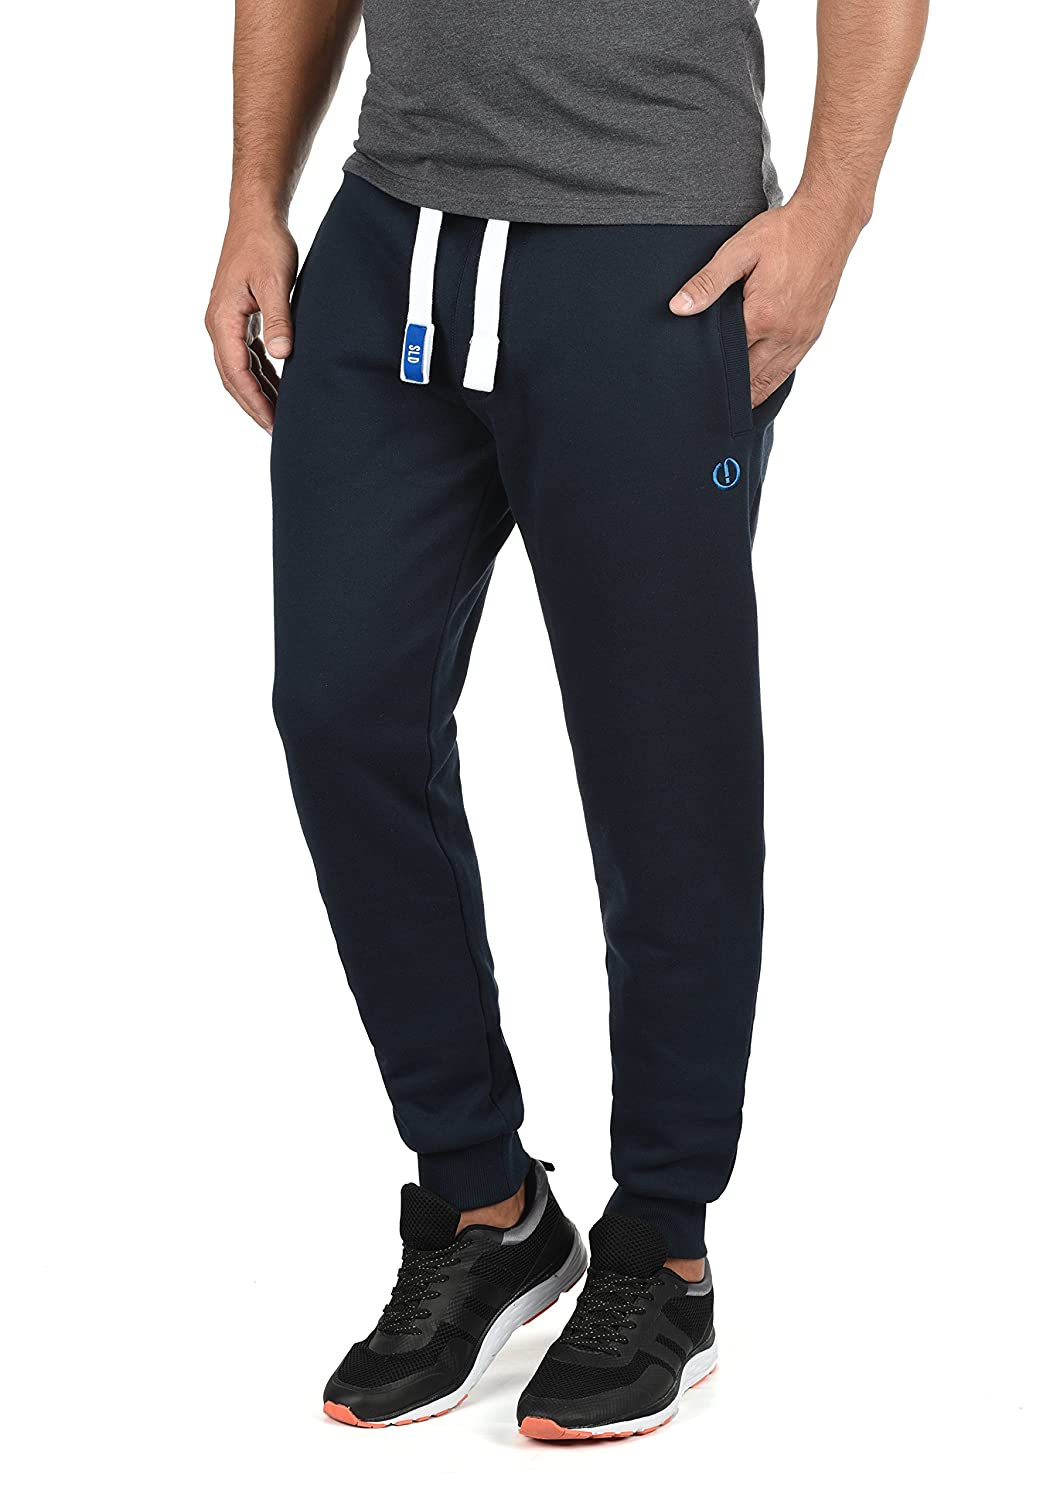 !Solid BennPant Herren Sweatpants Jogginghose Sporthose mit Fleece-Innenseite und Kordel Regular Fit